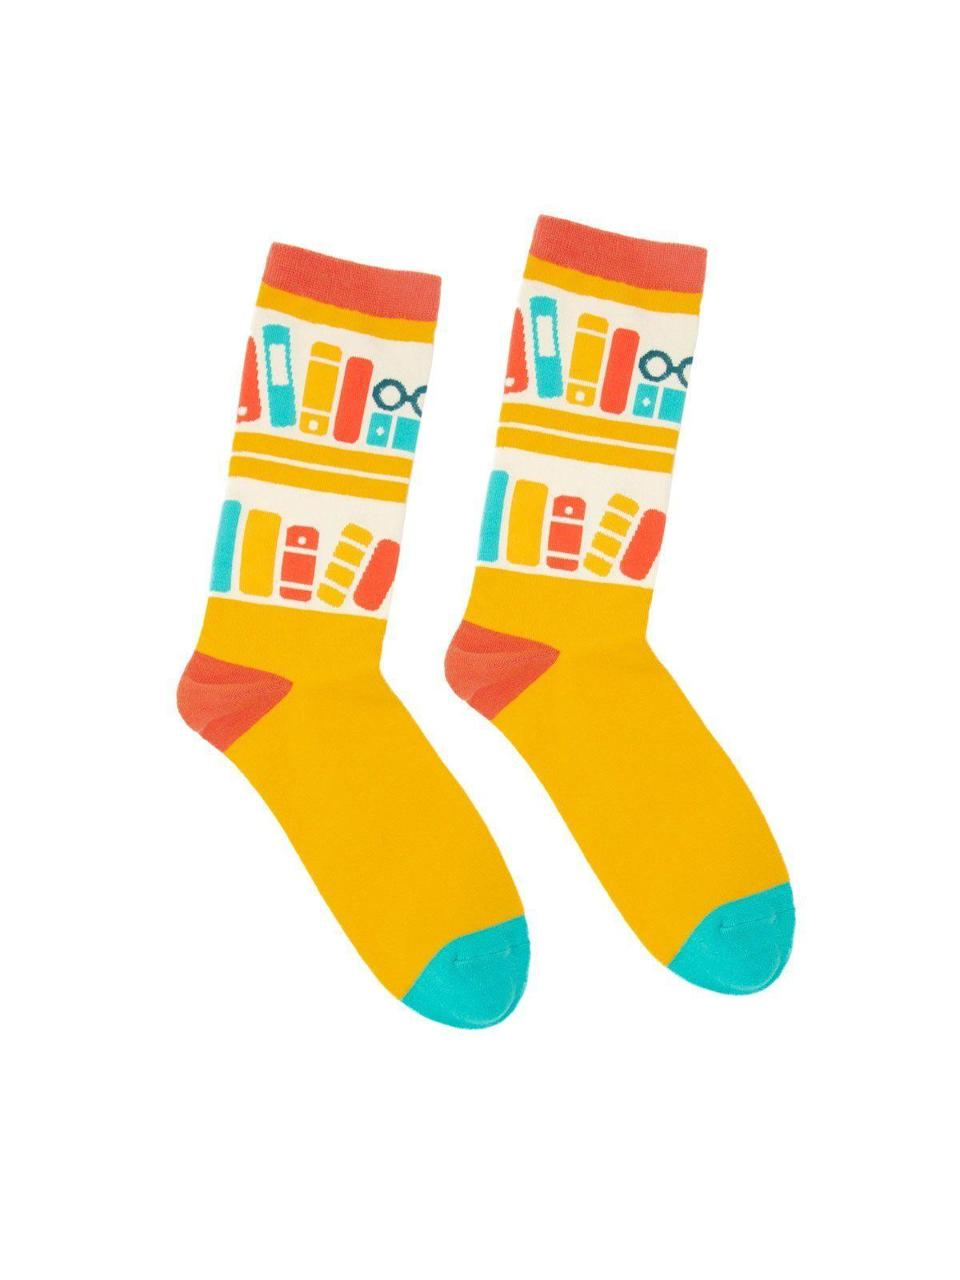 "<p><strong>Out of Print</strong></p><p>outofprint.com</p><p><strong>$12.00</strong></p><p><a href=""https://outofprint.com/collections/socks/products/bookshelf-socks"" rel=""nofollow noopener"" target=""_blank"" data-ylk=""slk:Shop Now"" class=""link rapid-noclick-resp"">Shop Now</a></p><p>Let your bibliophile show off their hobby wherever they go with these fun printed socks. </p>"